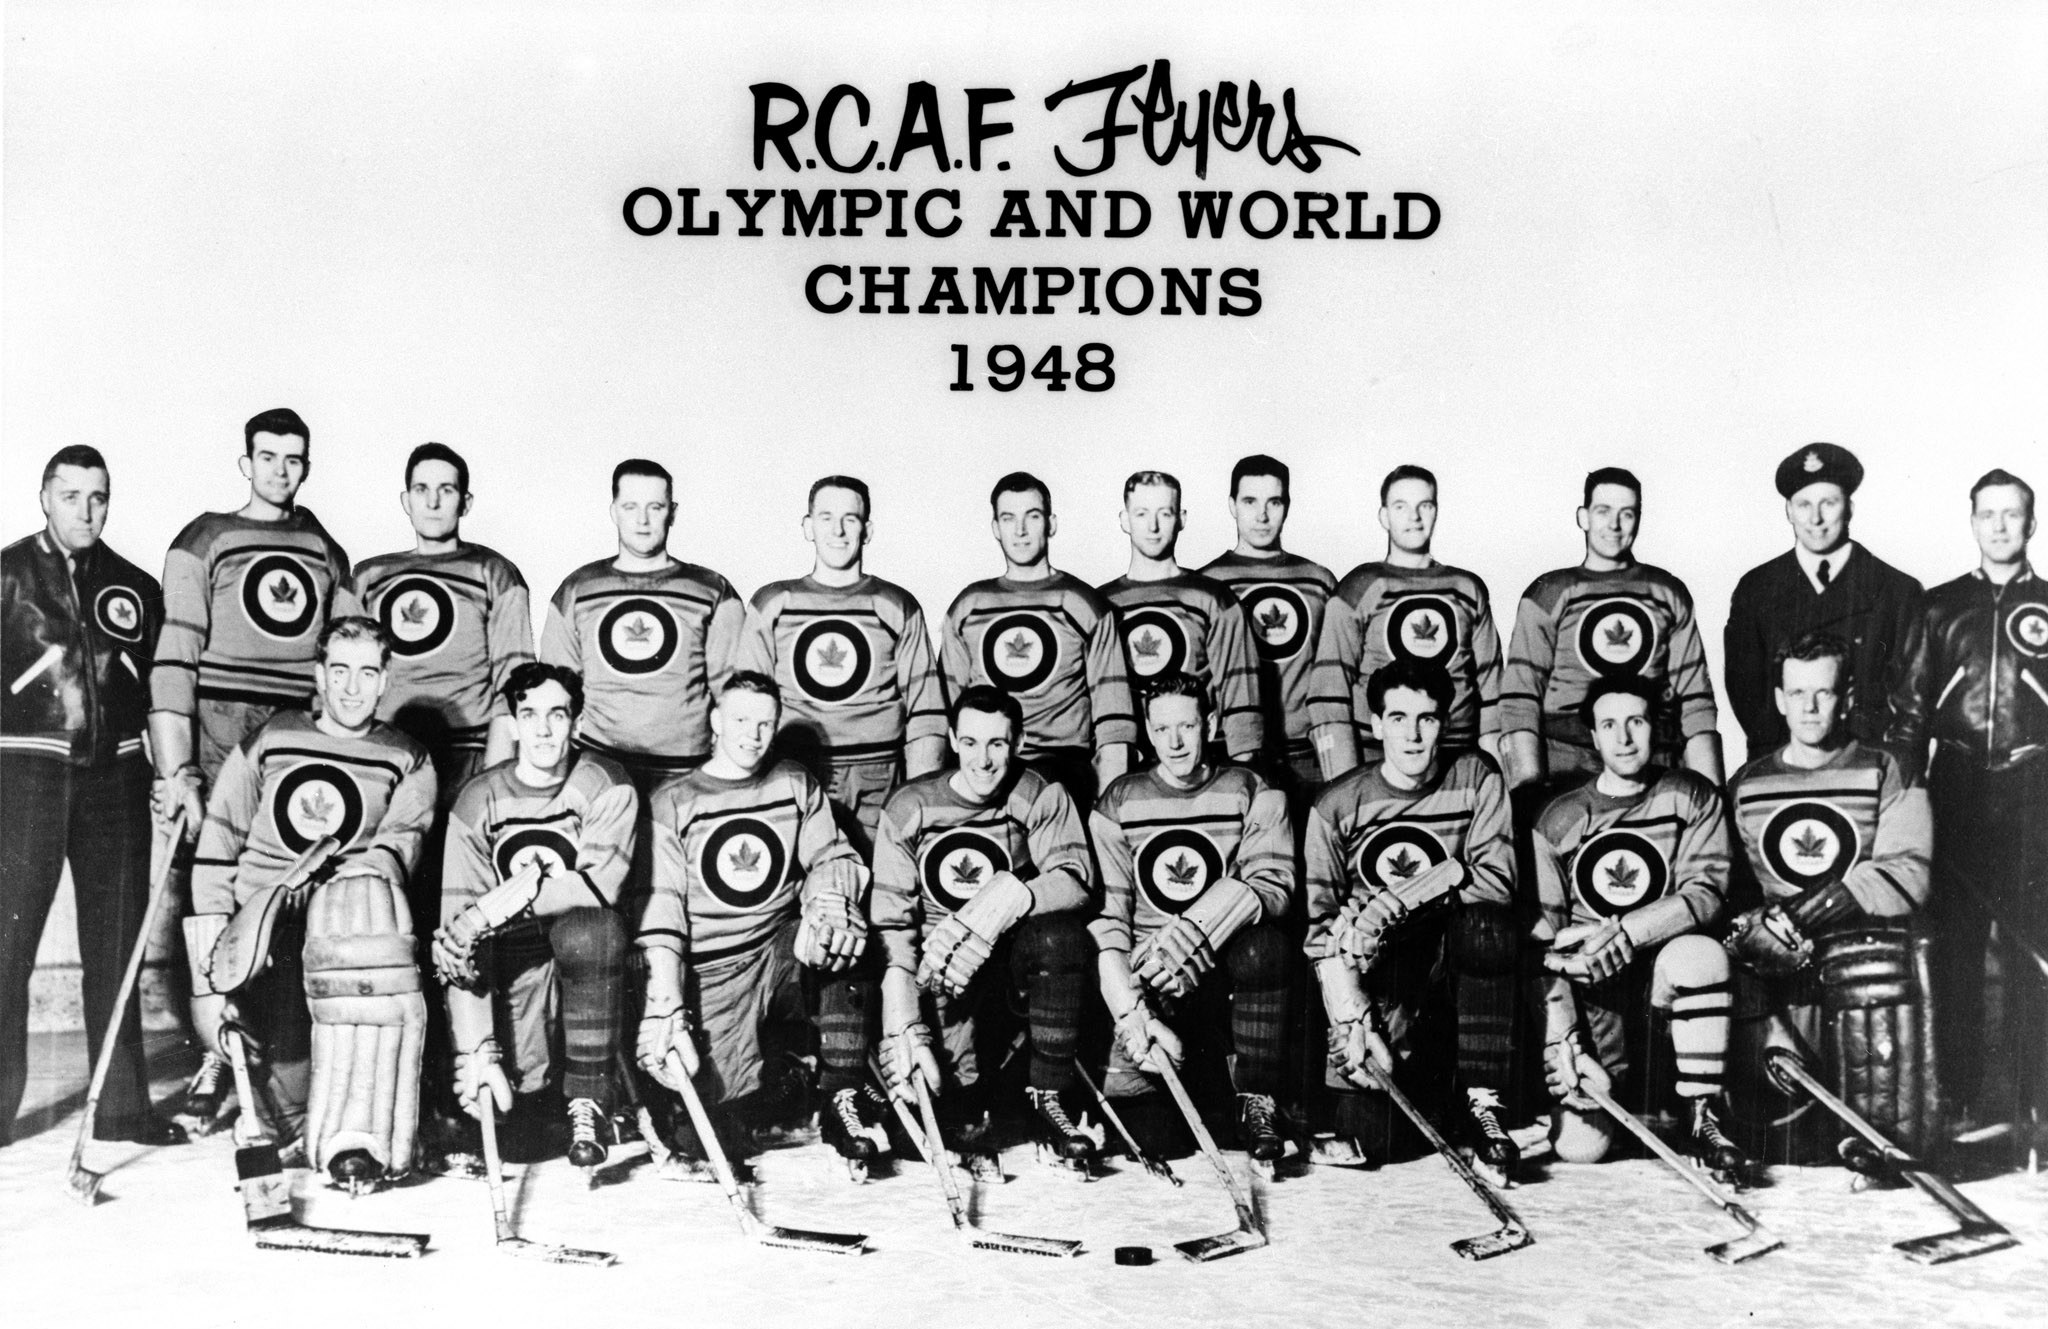 Photo: RCAF Flyer 1948 Olympic and World Champions PHOTO